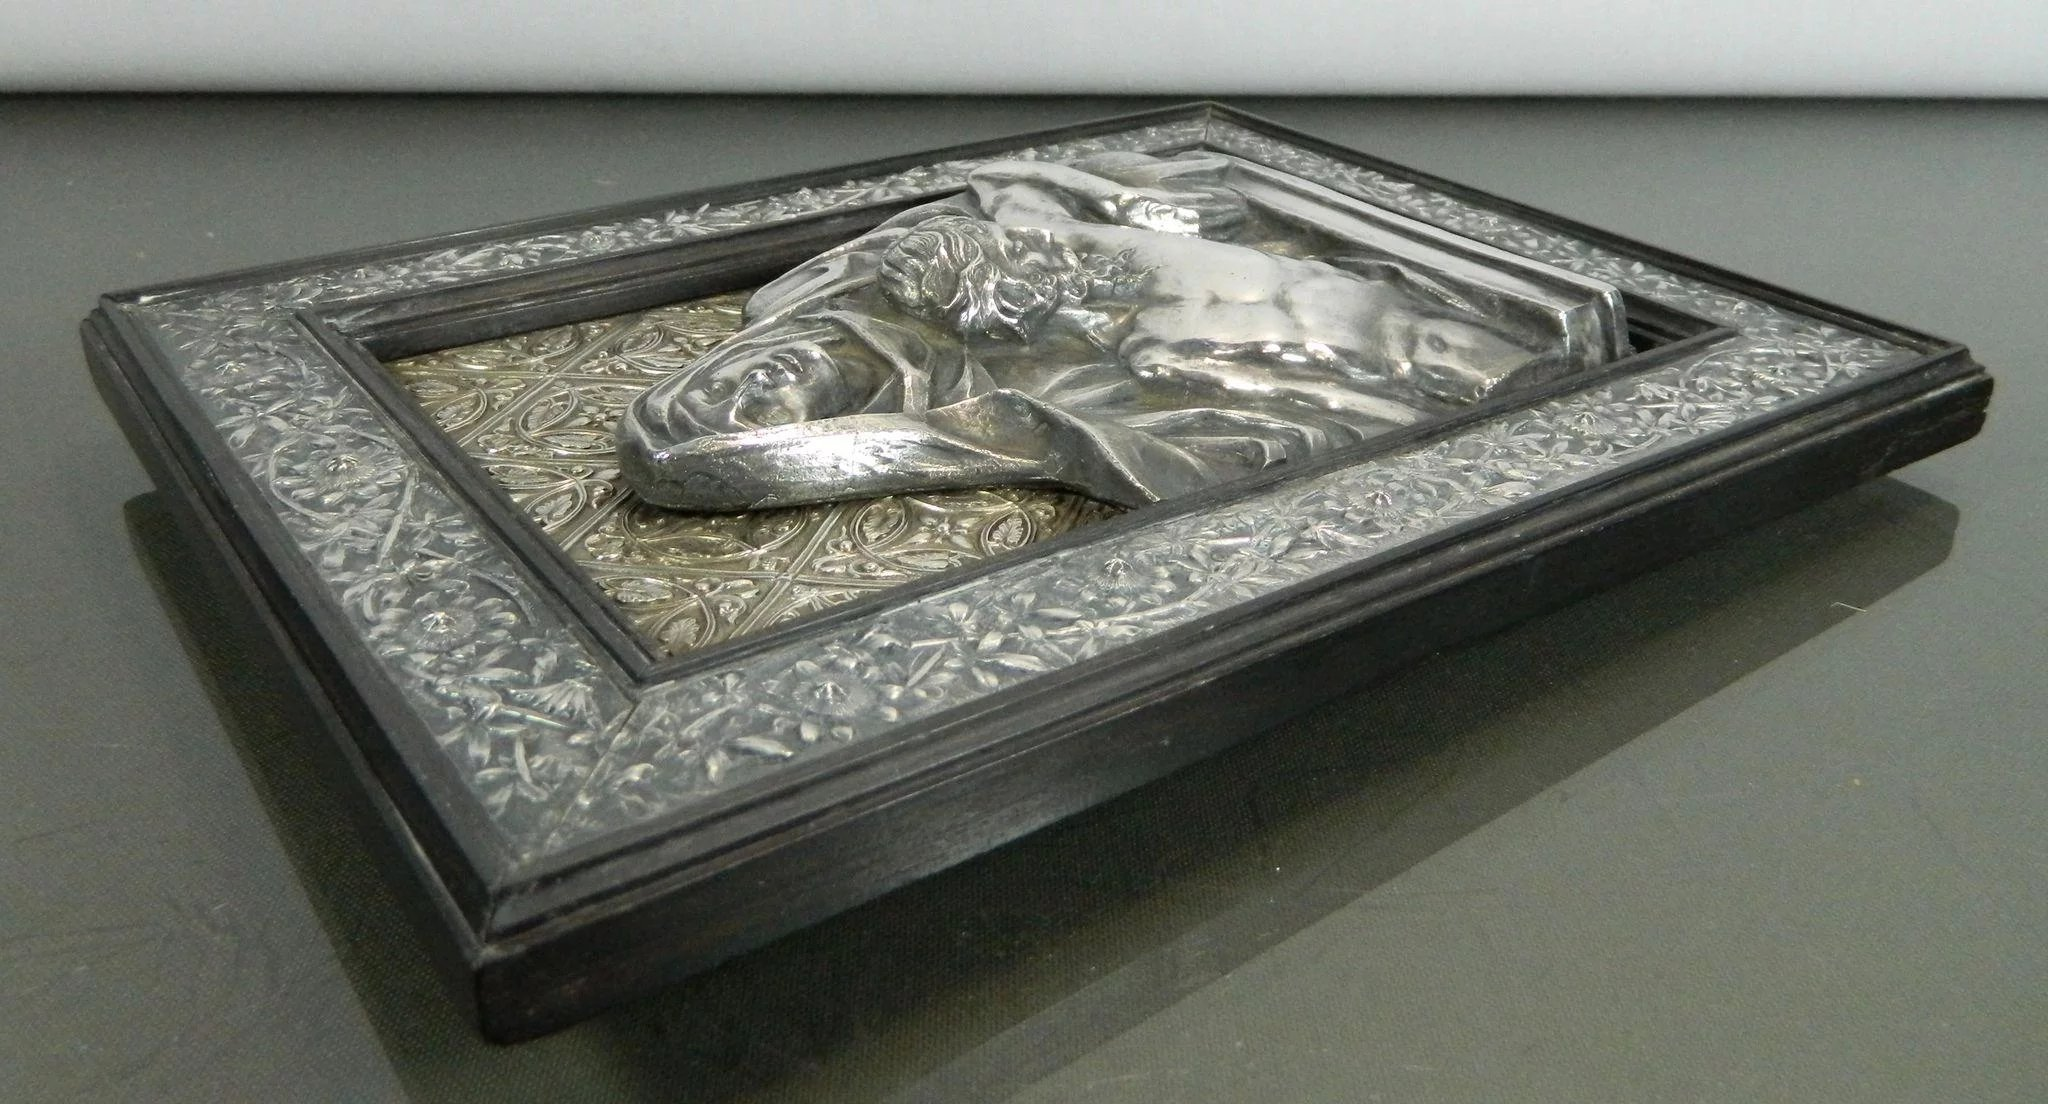 fe93c72c4b1 Click to expand · Antique Chiselled Sterling Silver Frame Stand with a  Plaque of the Virgin Mary ...